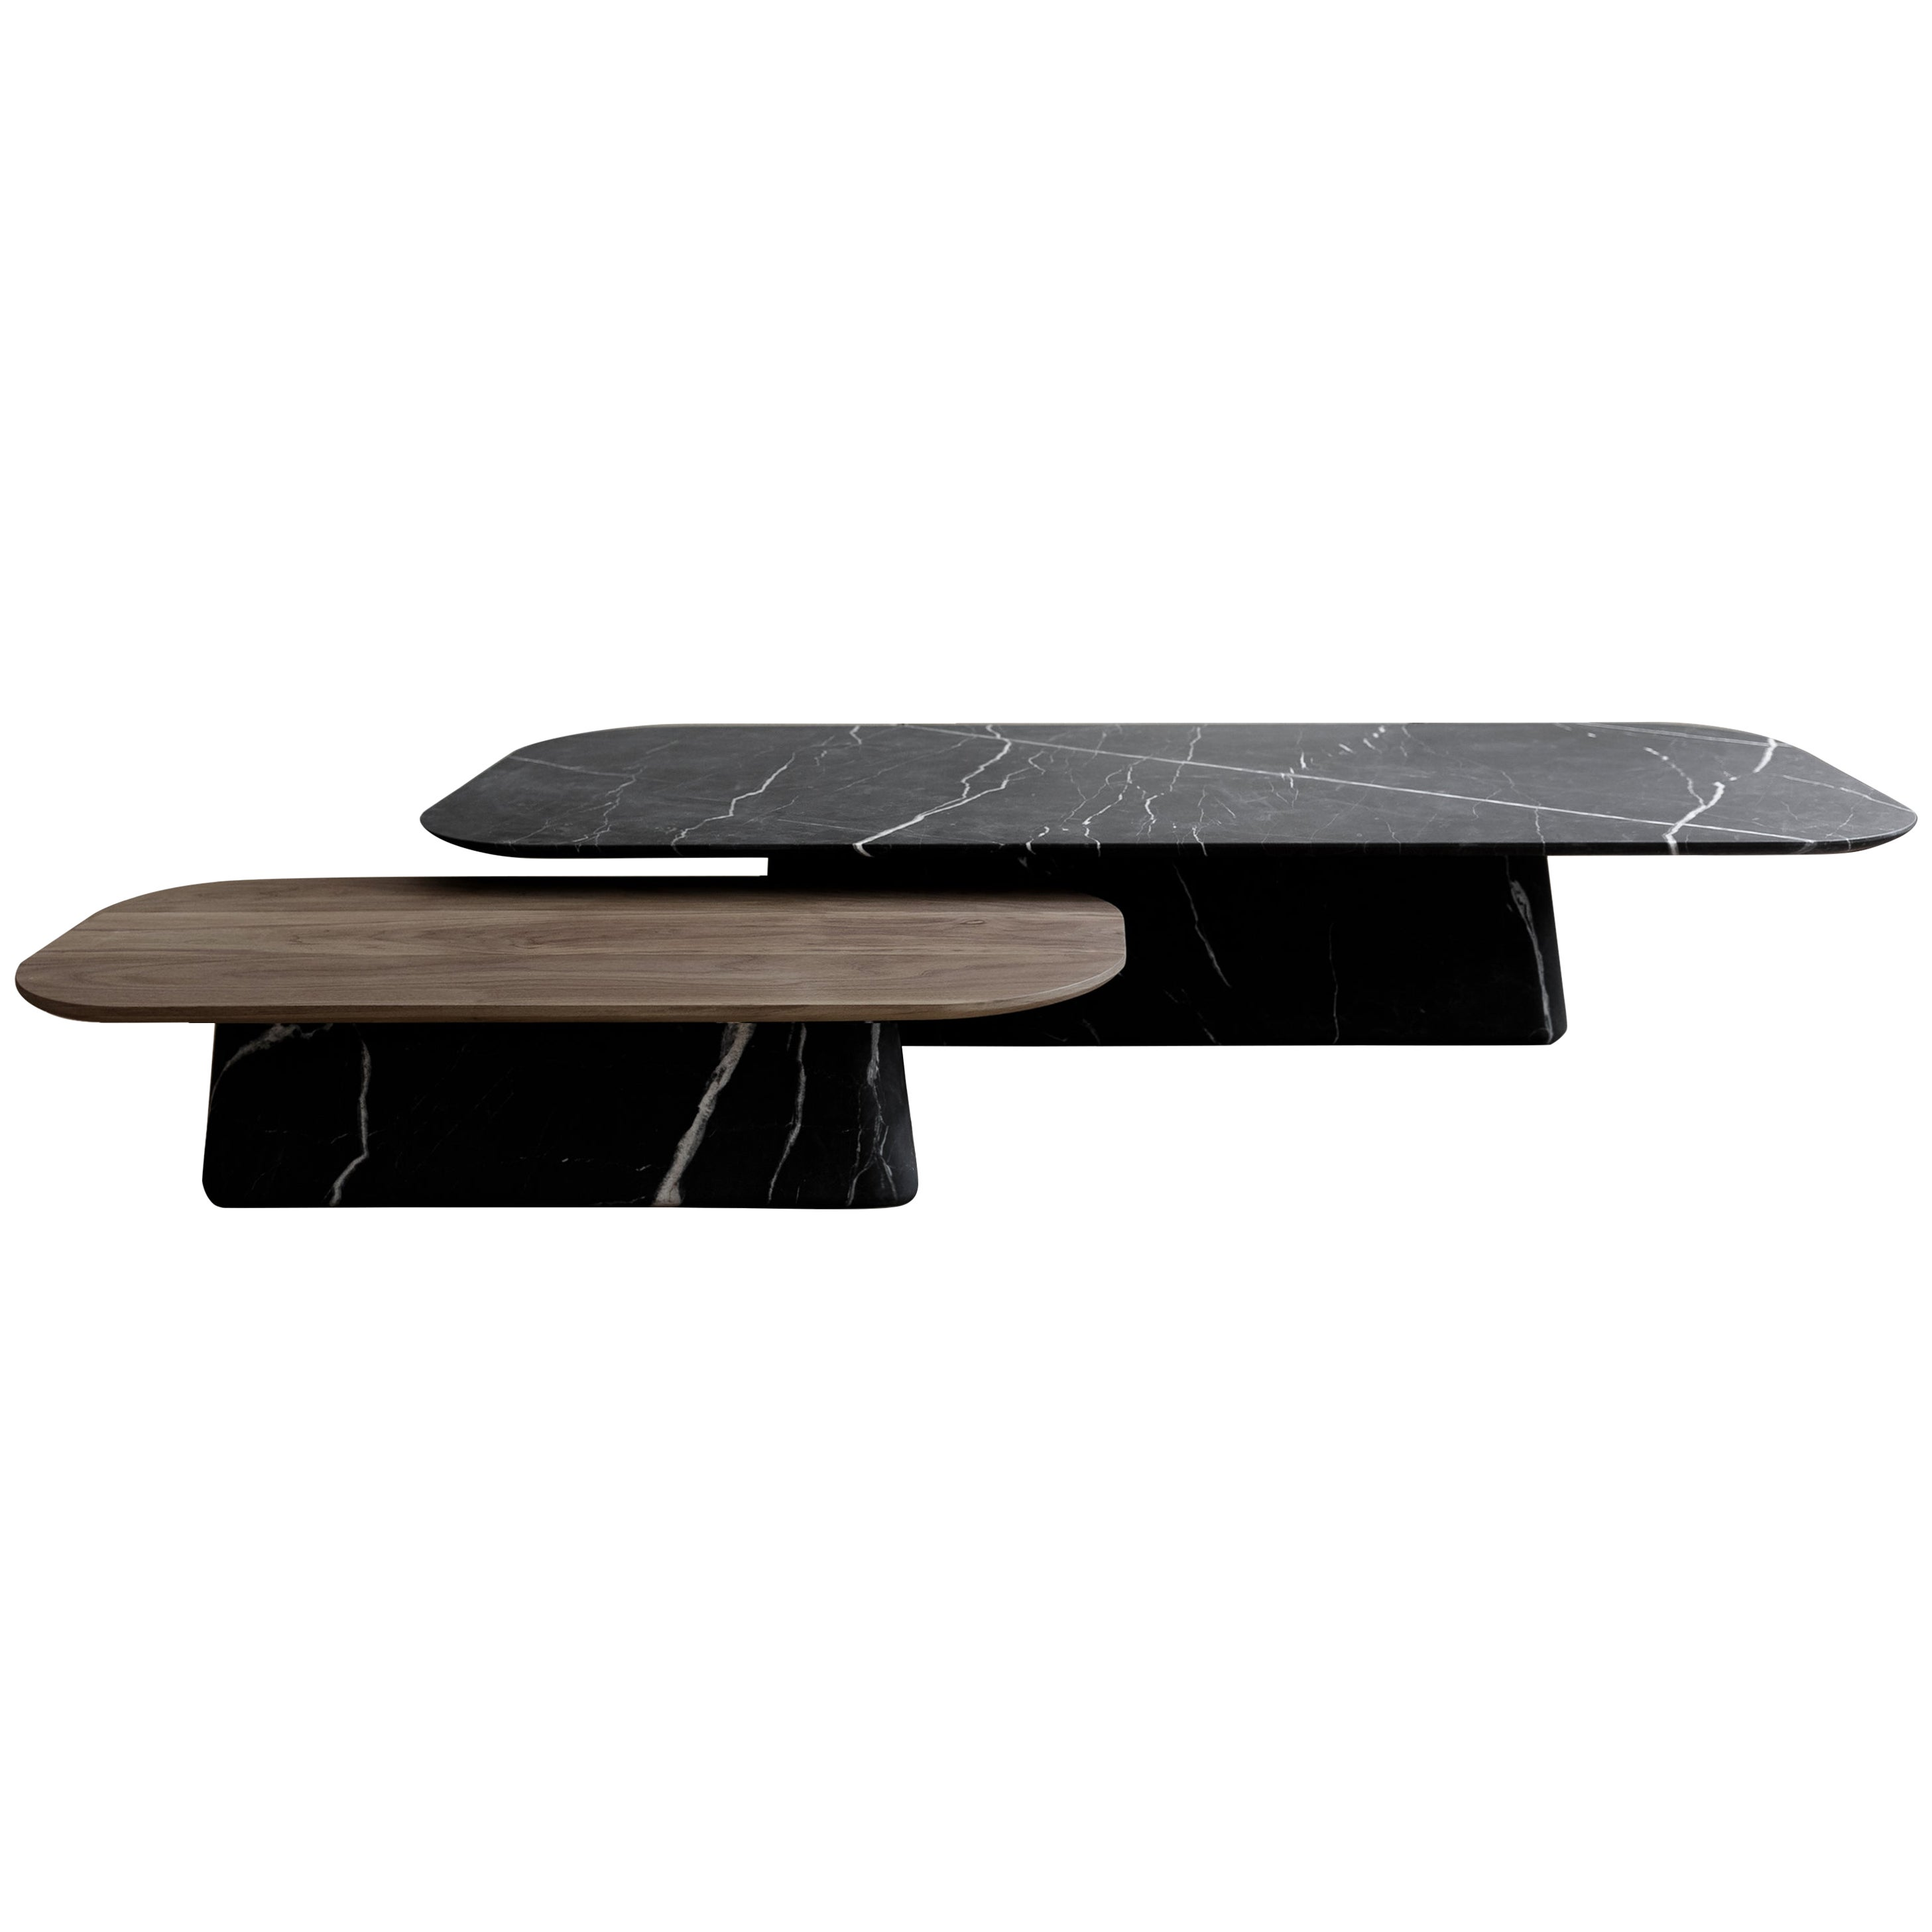 Two Pedestal Coffee Tables in black marble and walnut wood set